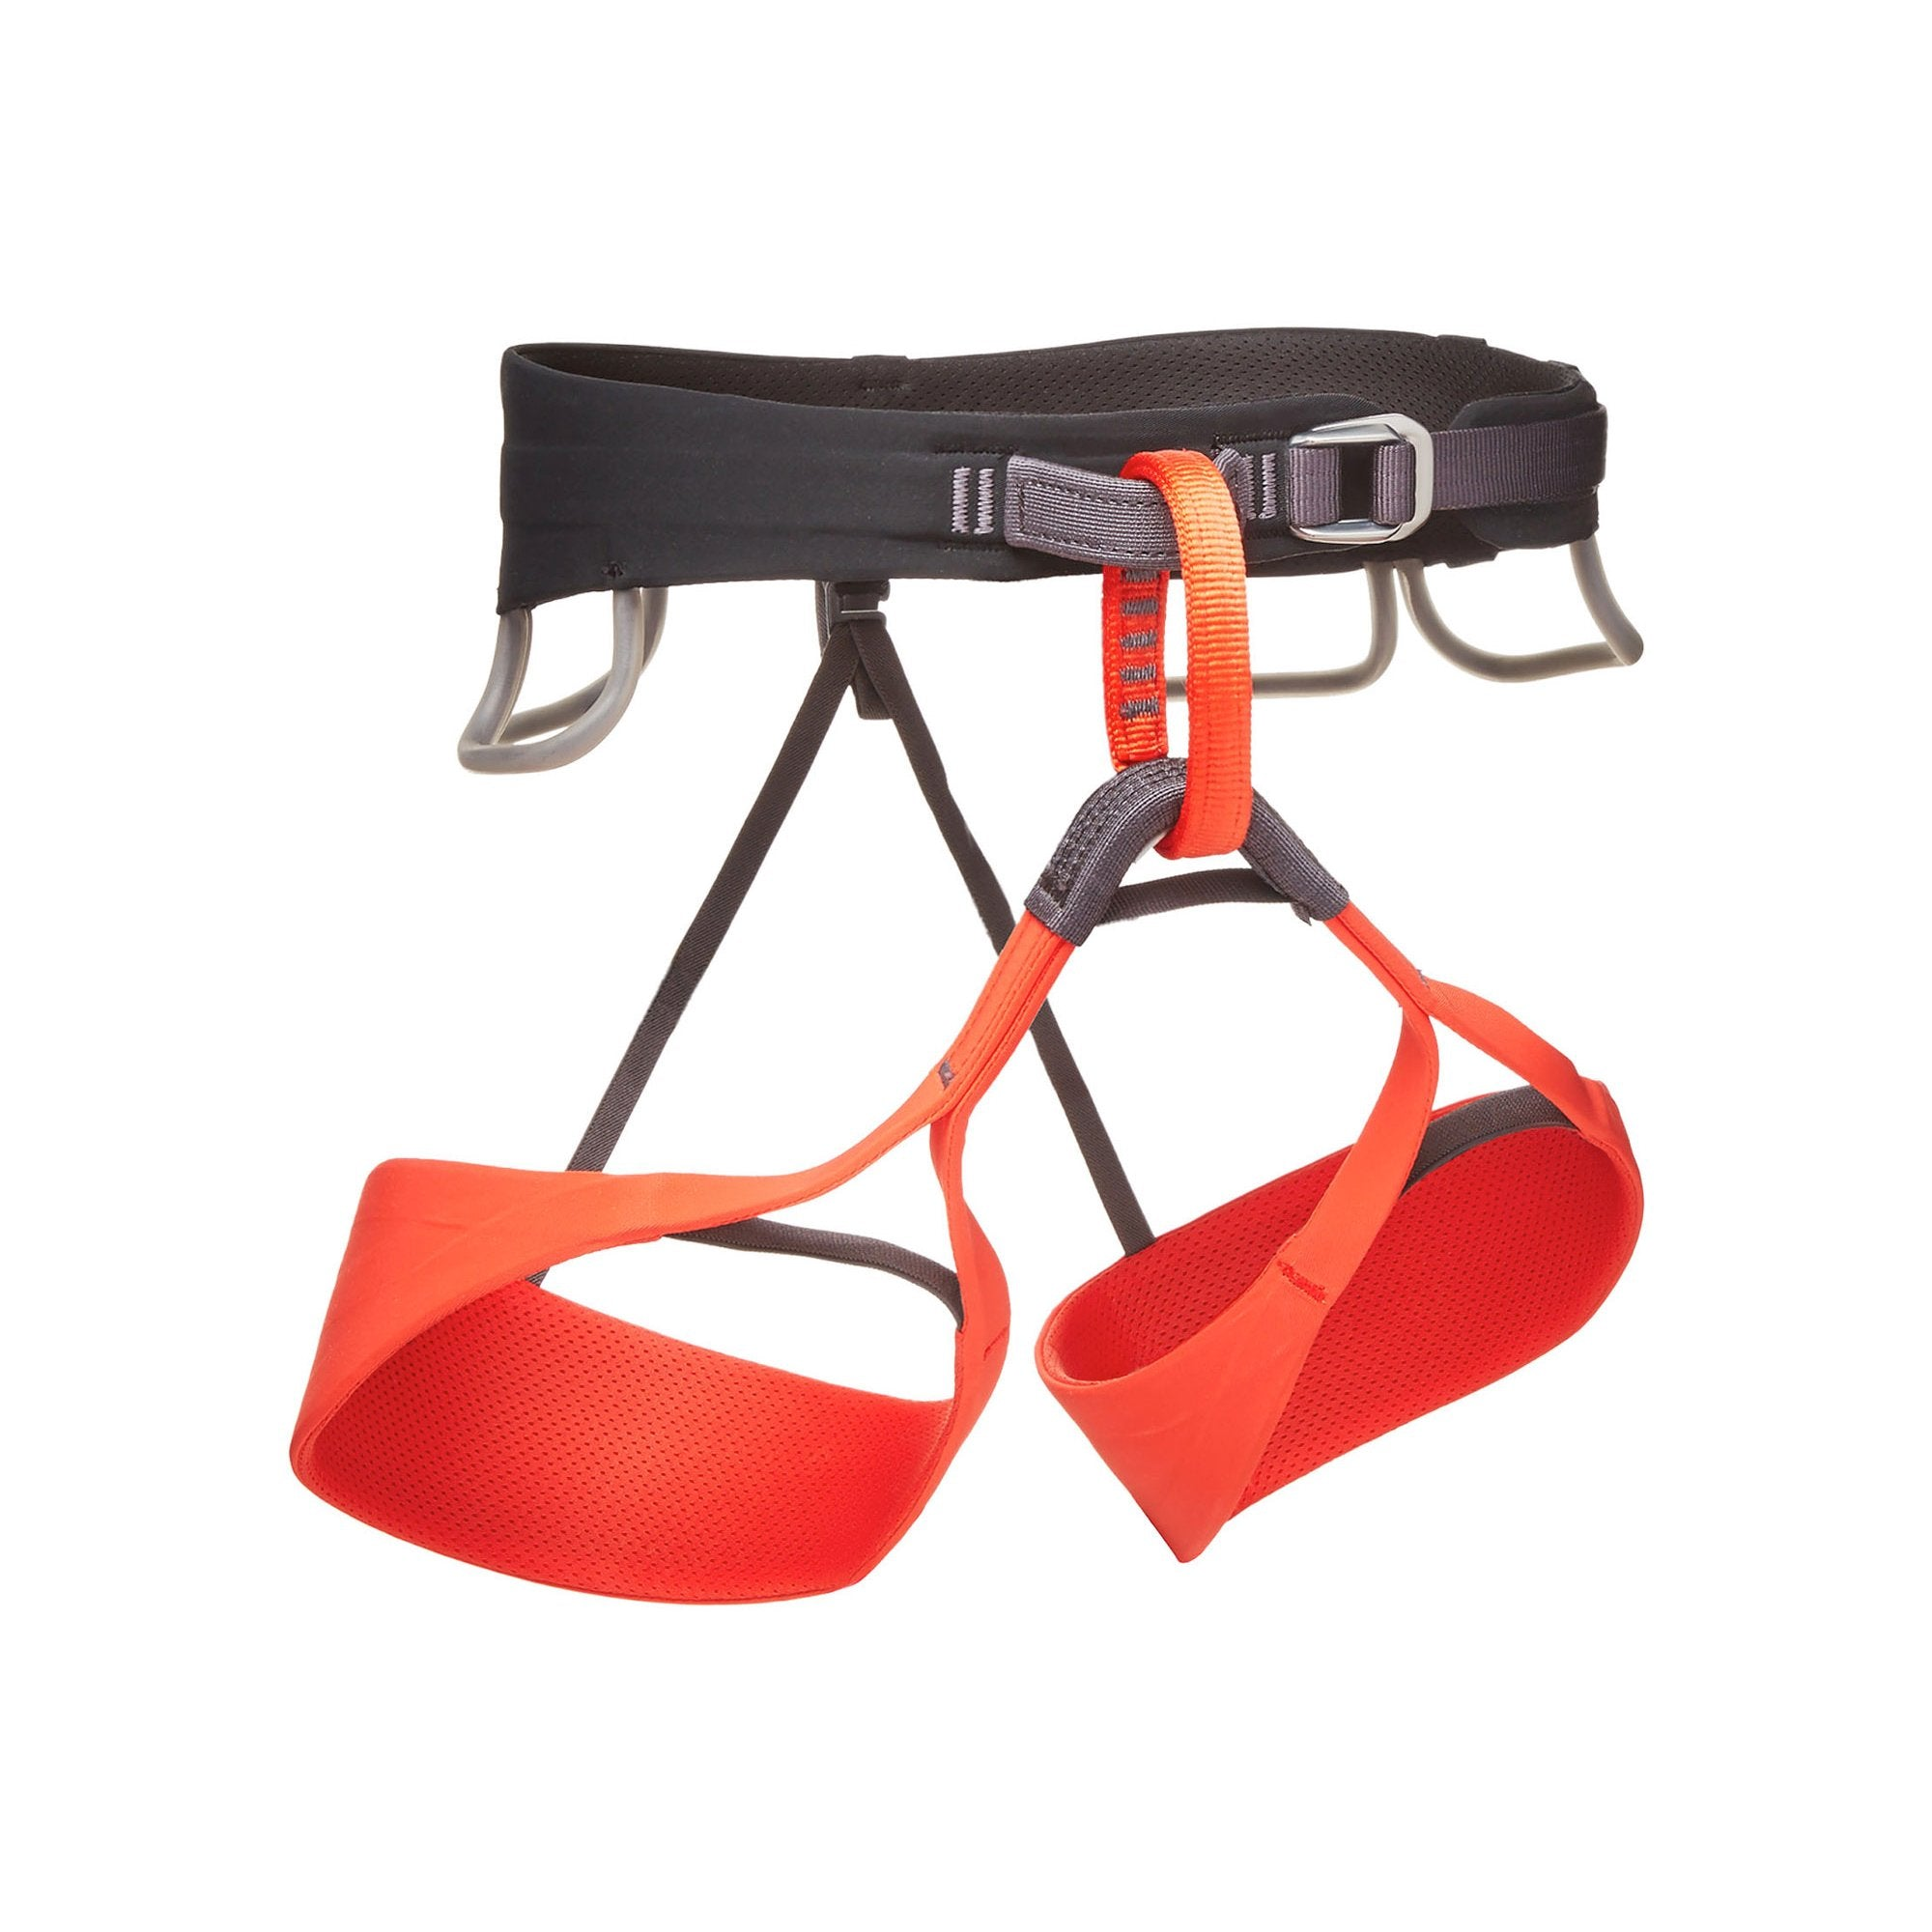 Black Diamond Solution Womens climbing harness, front view shown in black and red colours